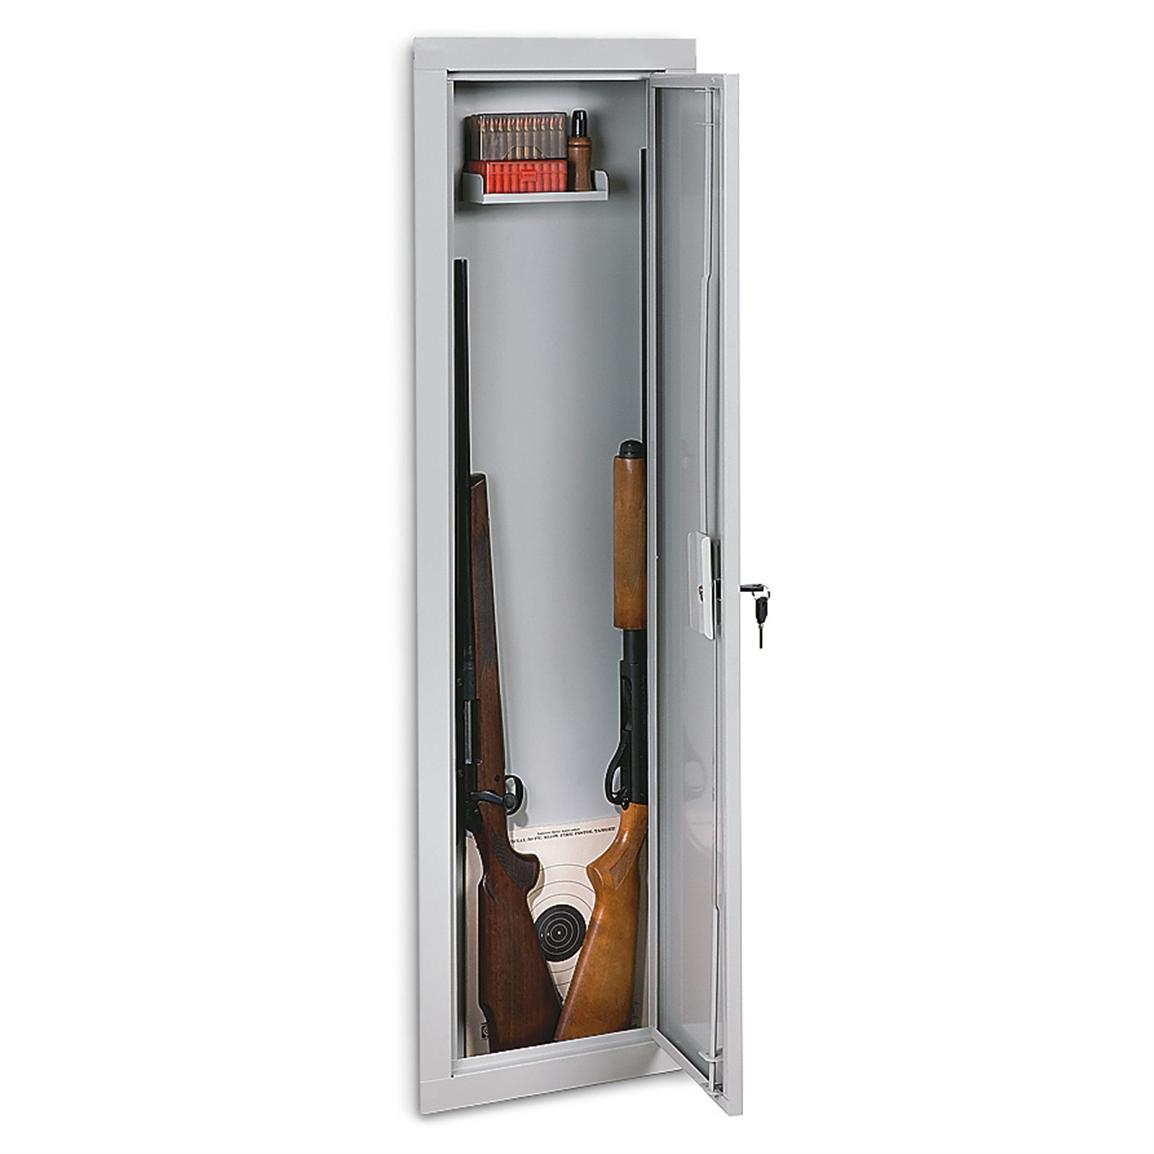 "Sentry Safe ""Home Defense Center"" opinions, experience?-161400_ts.jpg"